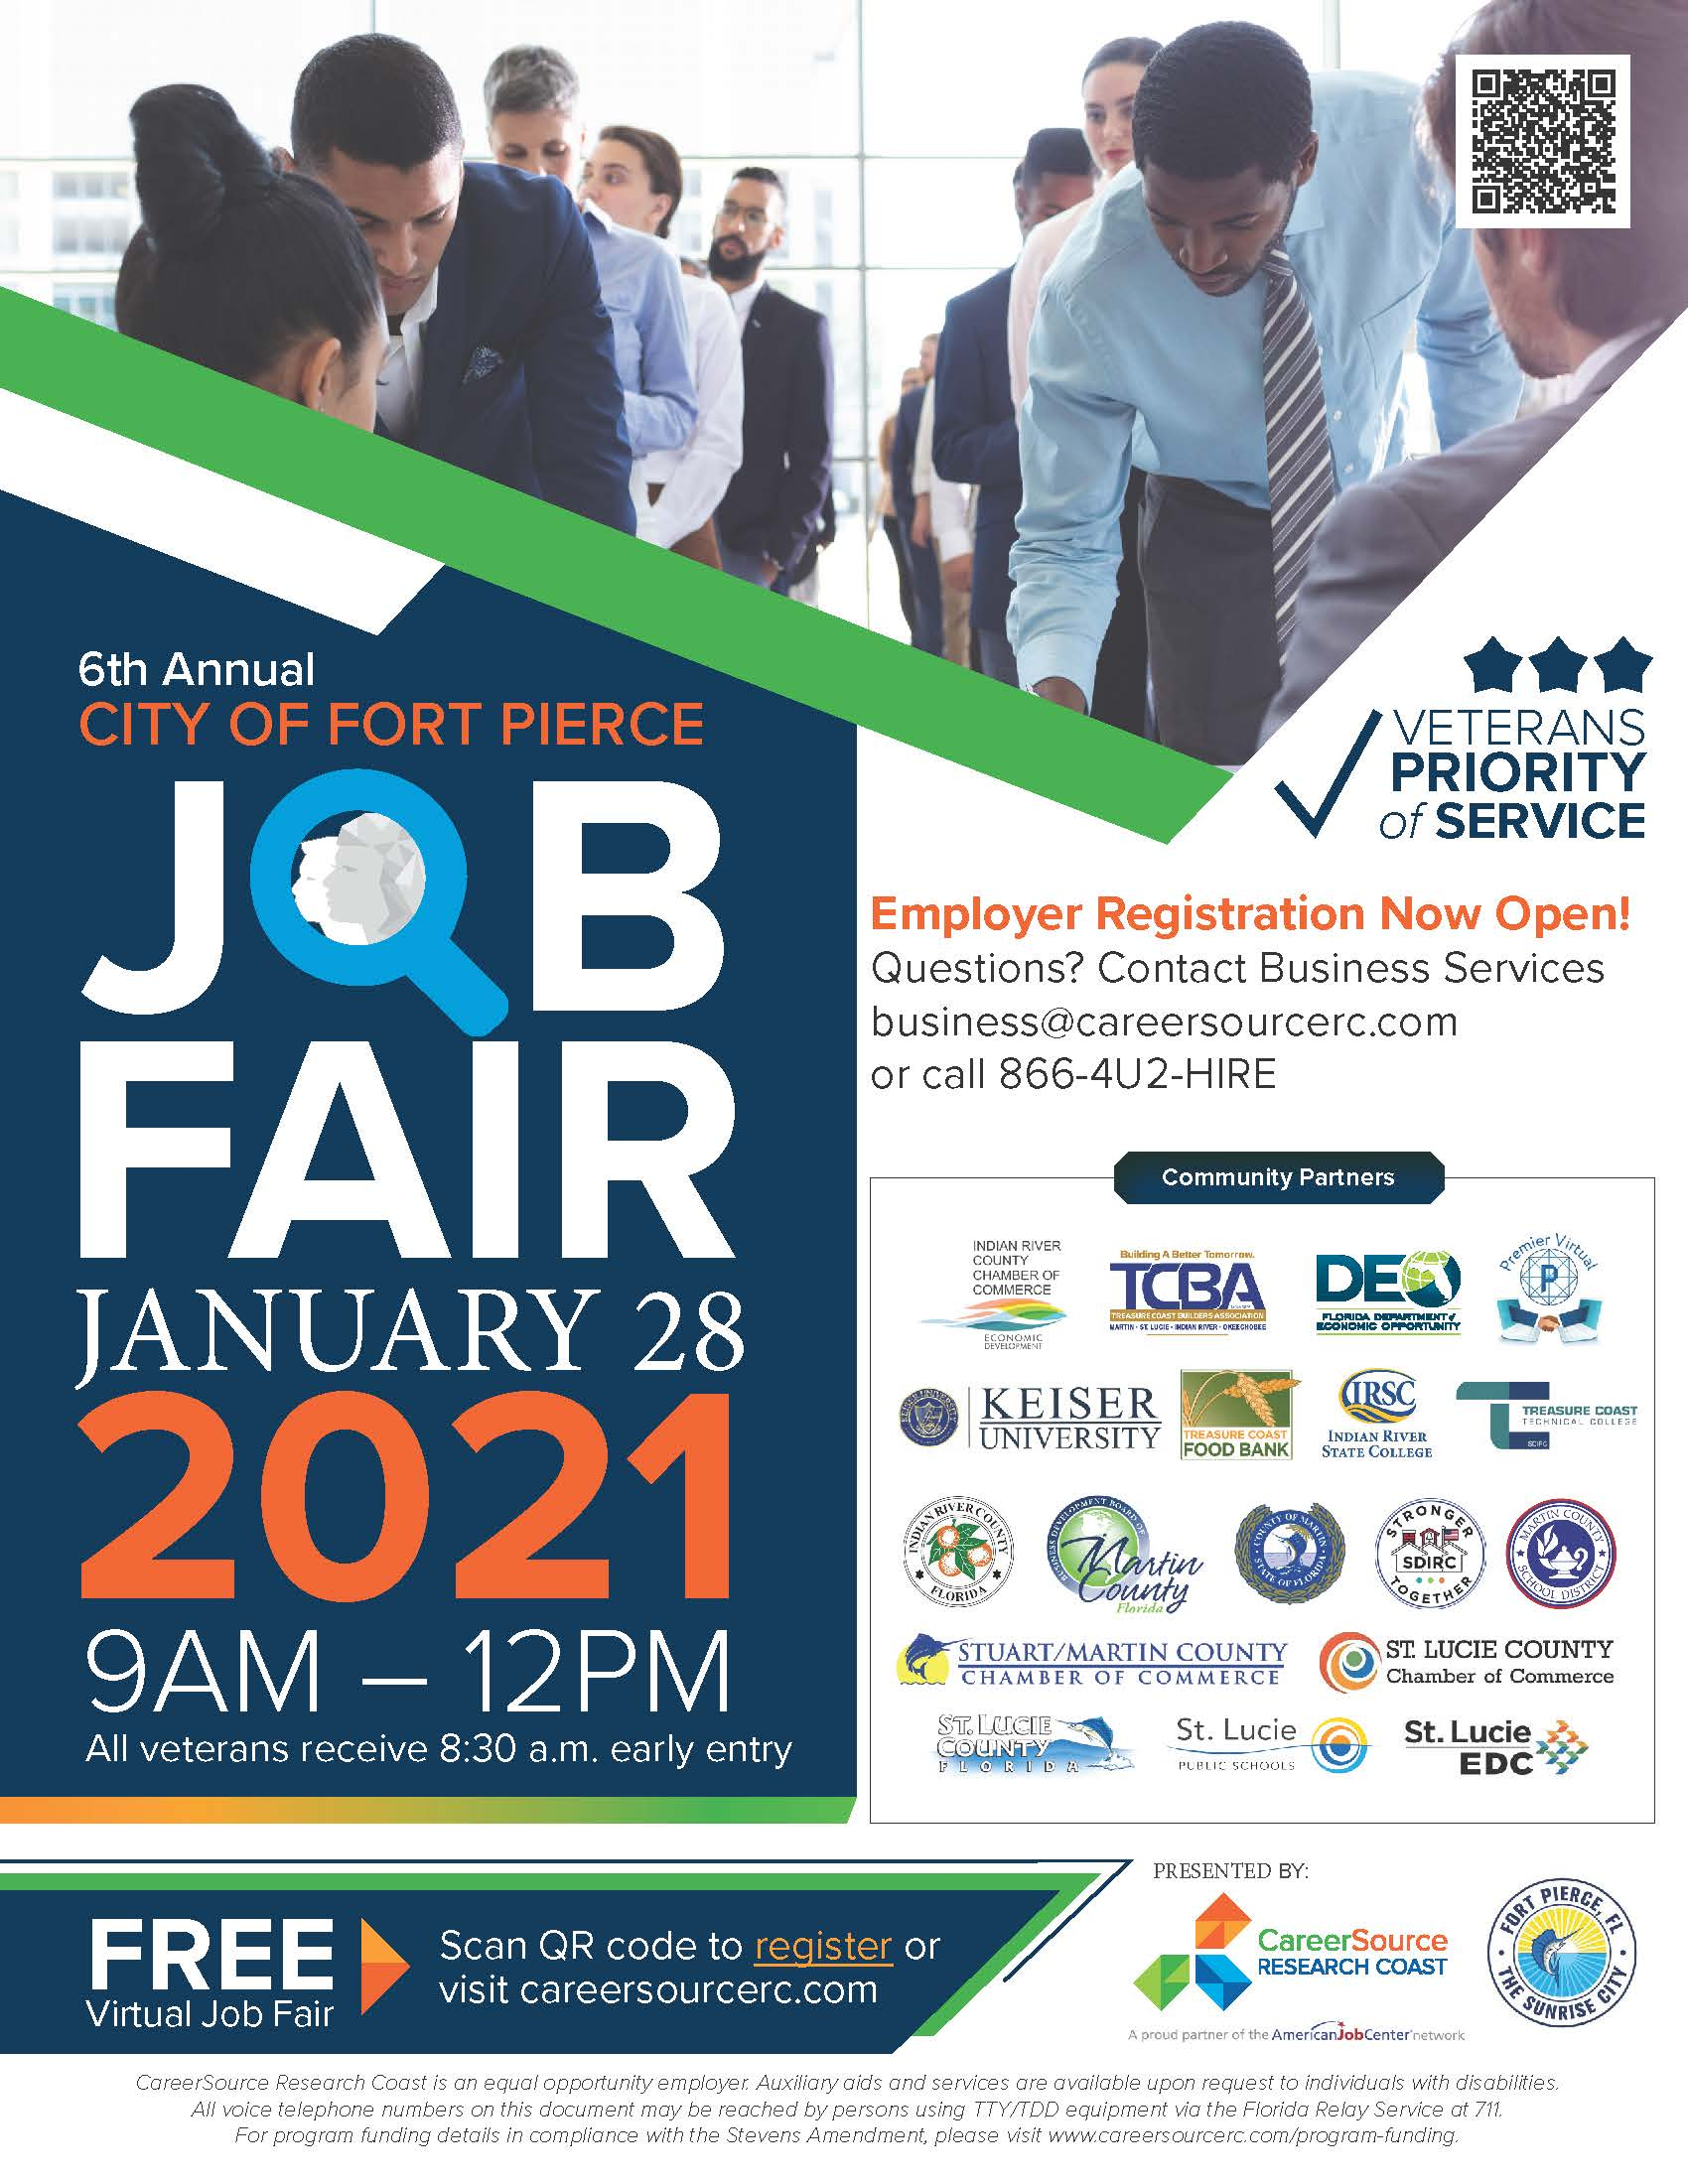 Sixth Annual City of Fort Pierce Job Fair Employer Flyer